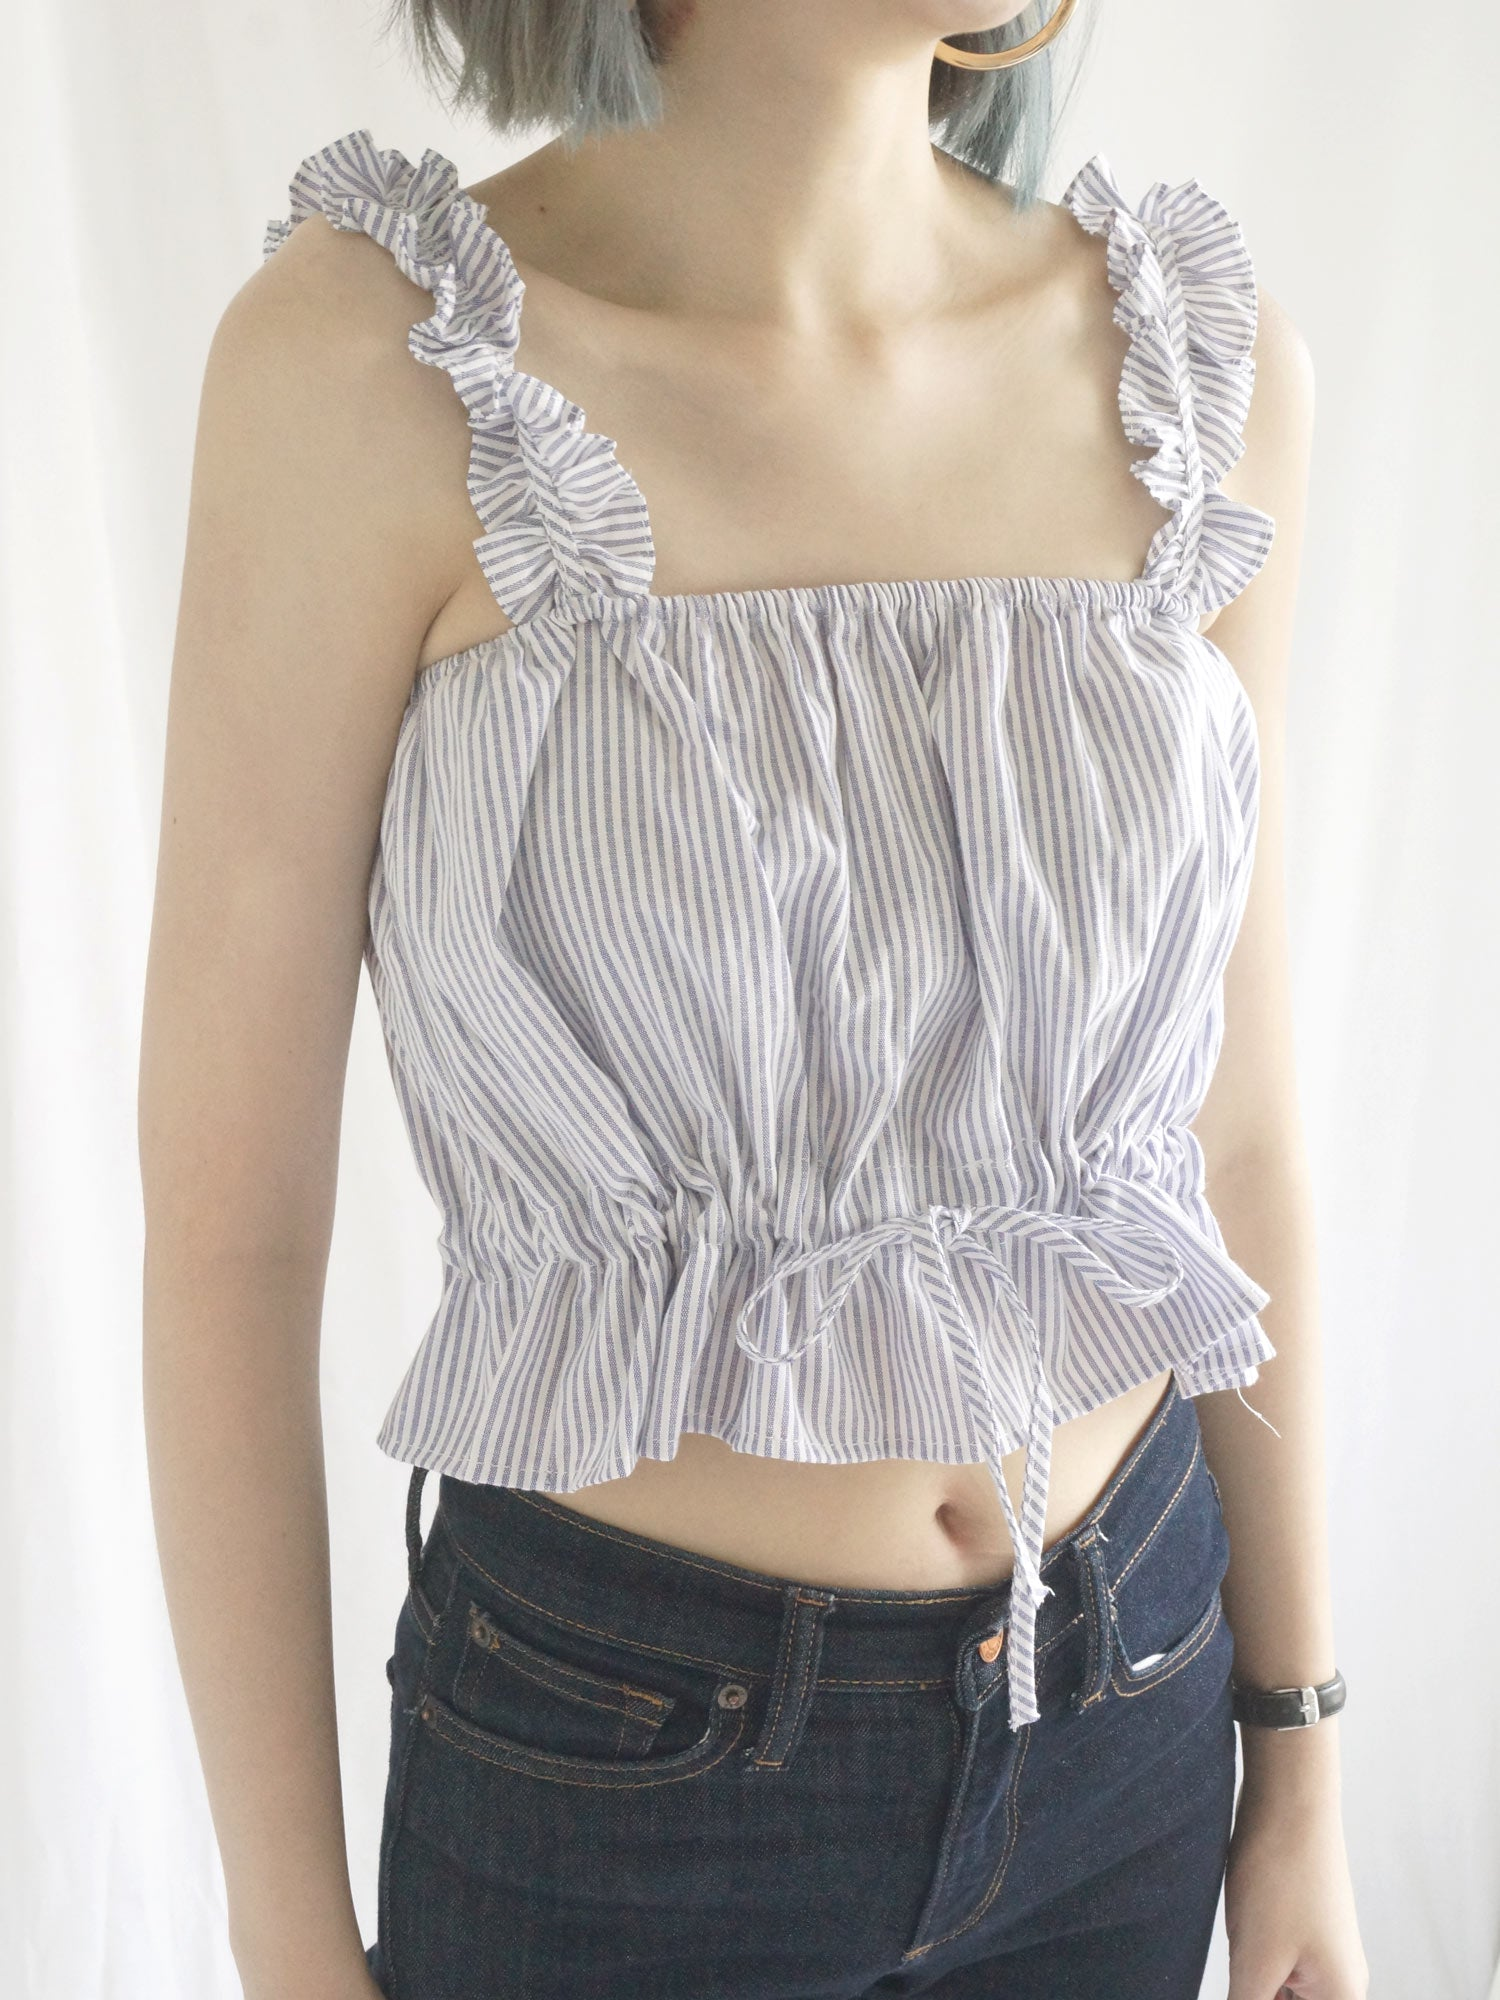 Elle Ruffles Top - Brick Red